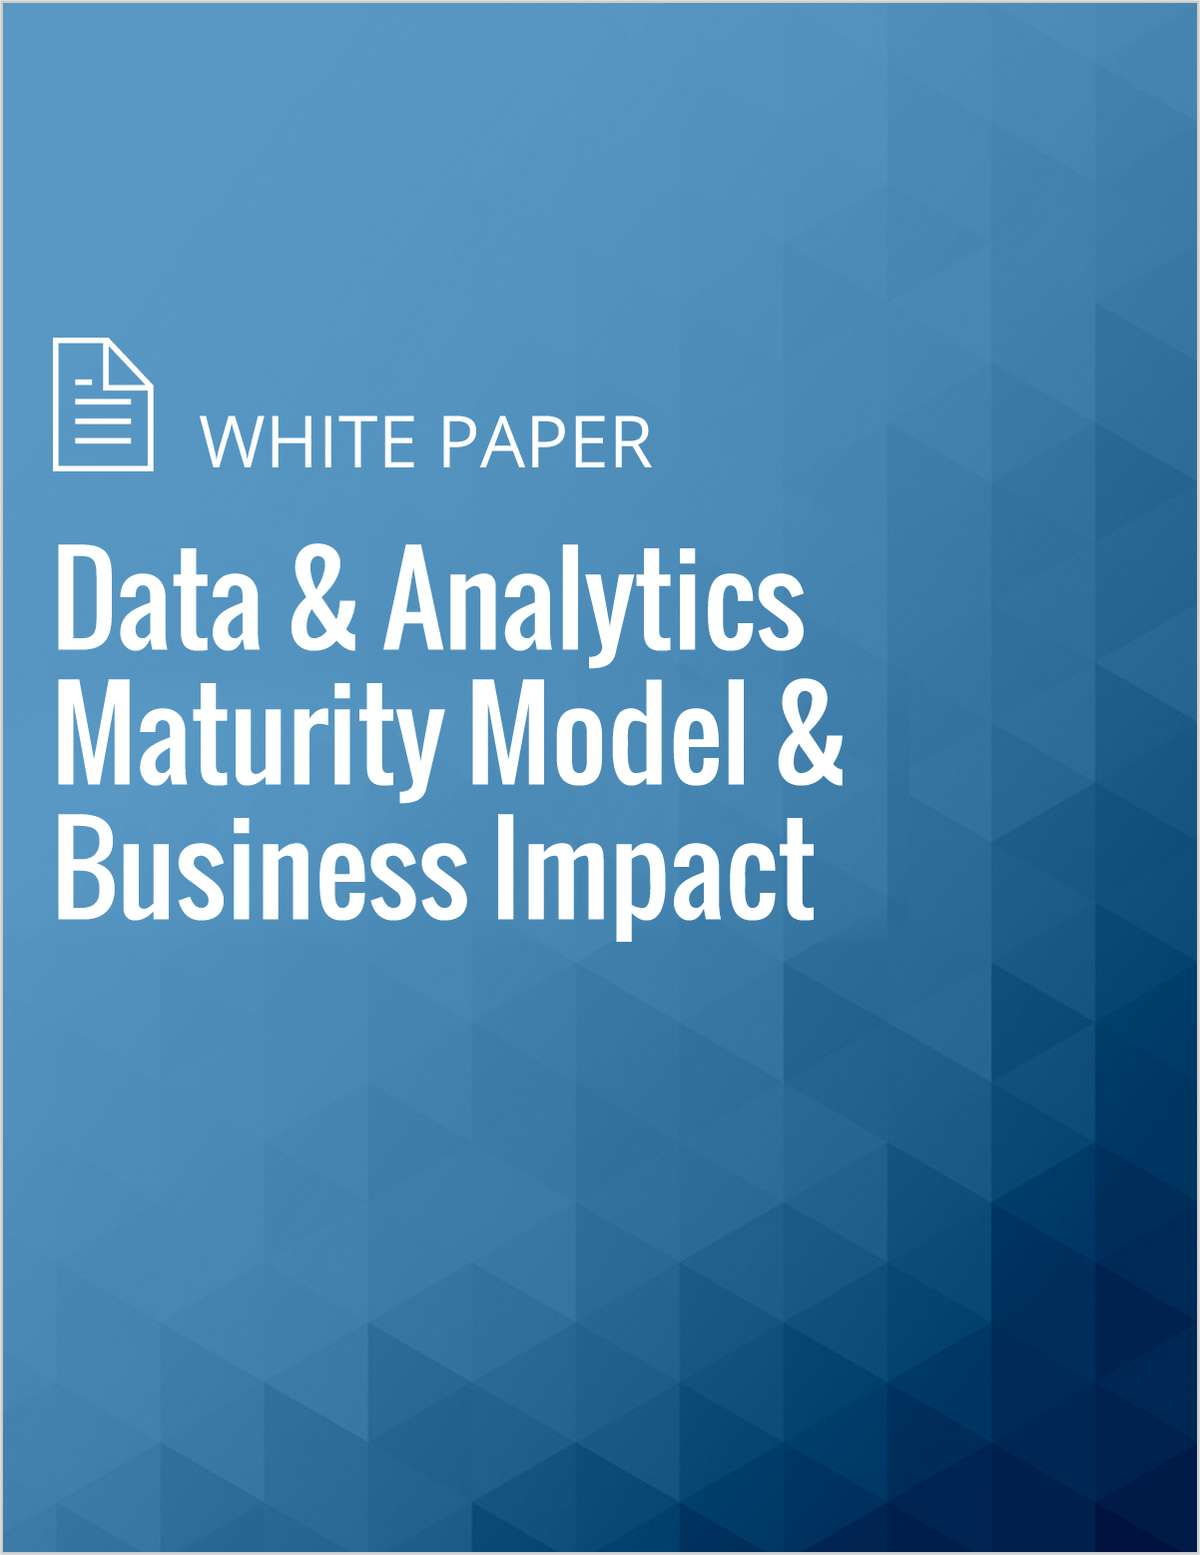 Data & Analytics Maturity Model & Business Impact